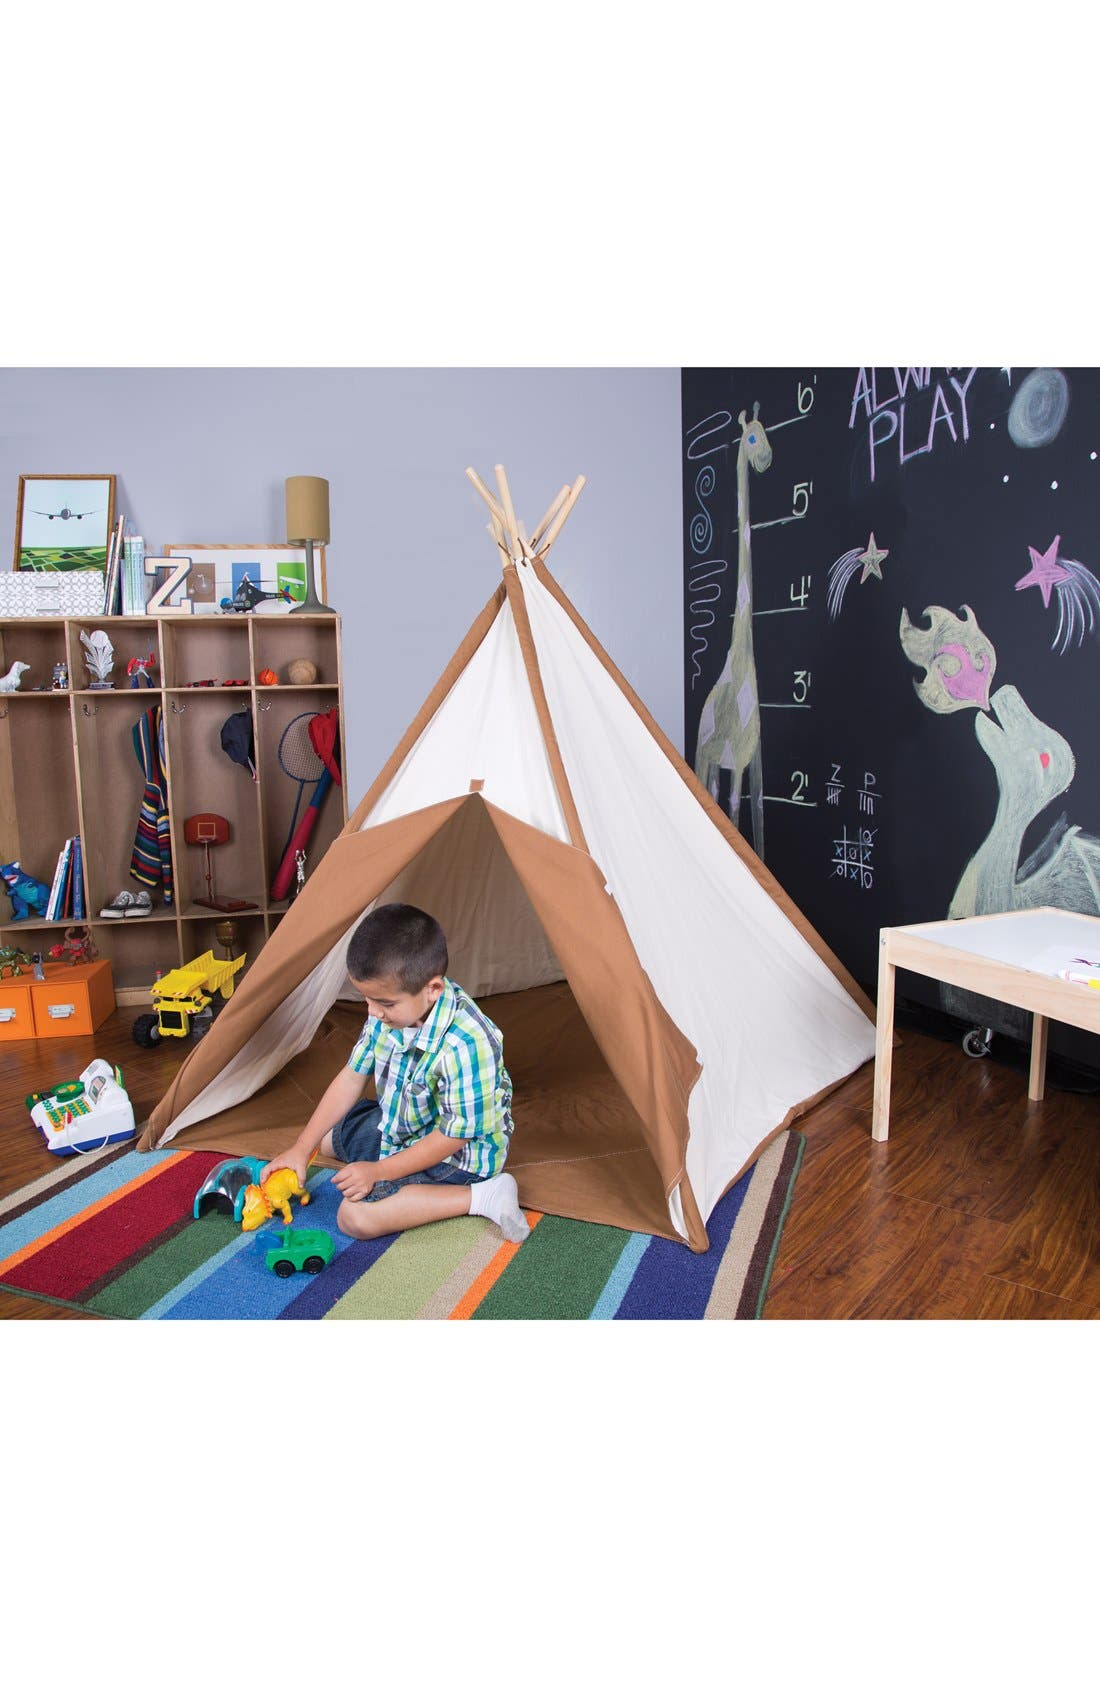 PACIFIC PLAY TENTS,                             Cotton Canvas Teepee,                             Alternate thumbnail 4, color,                             250